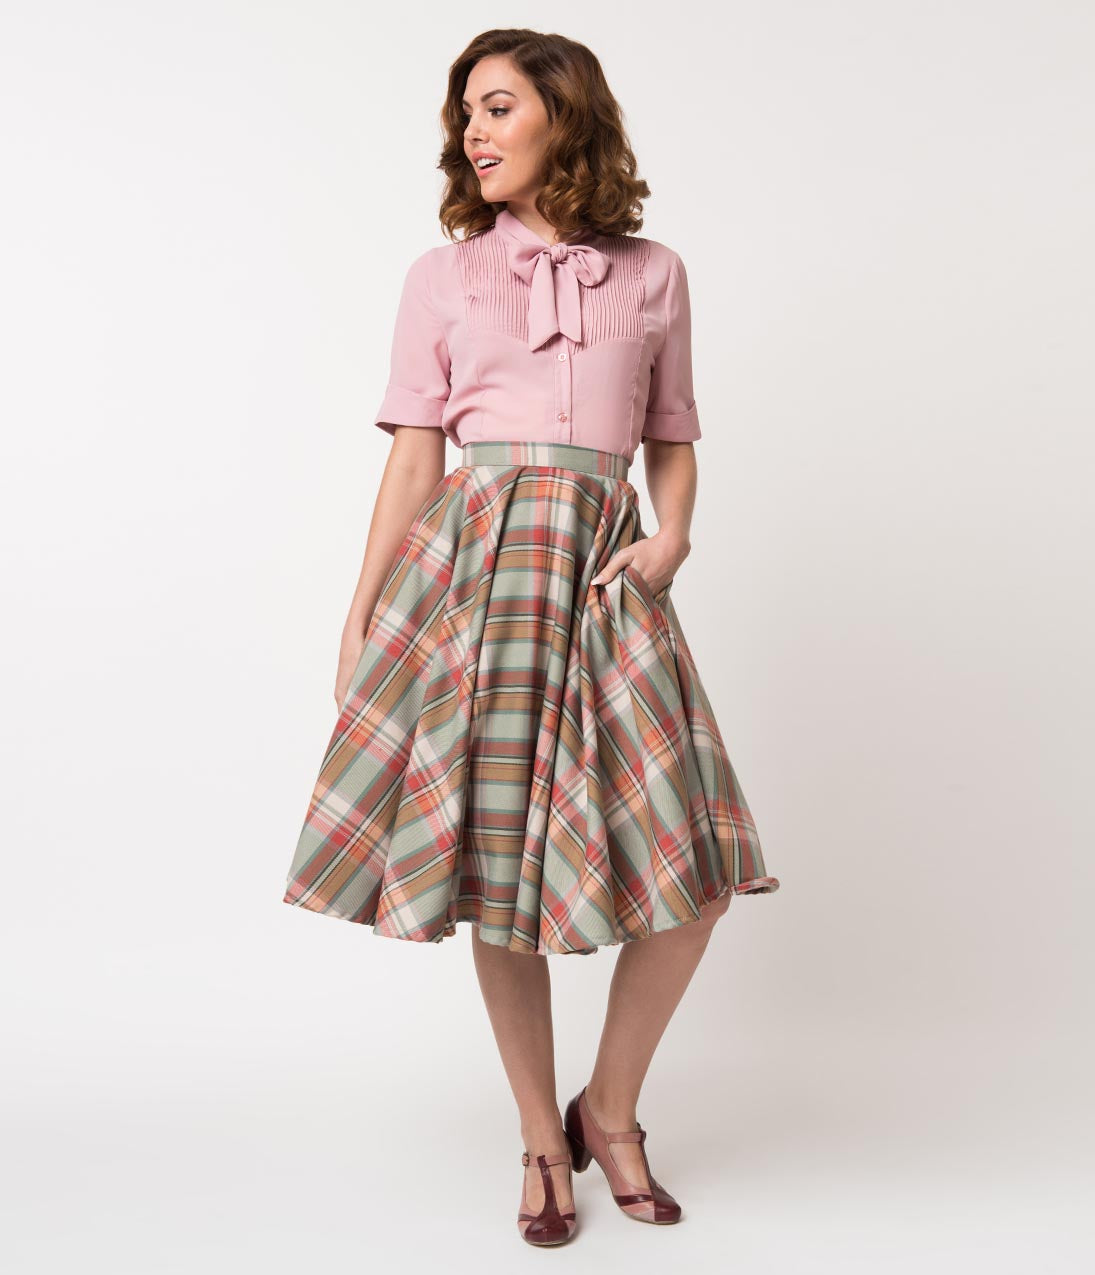 What Did Women Wear in the 1950s? 1950s Fashion Guide Vintage Style Mint  Cream Plaid Cotton Circle Swing Skirt $62.00 AT vintagedancer.com